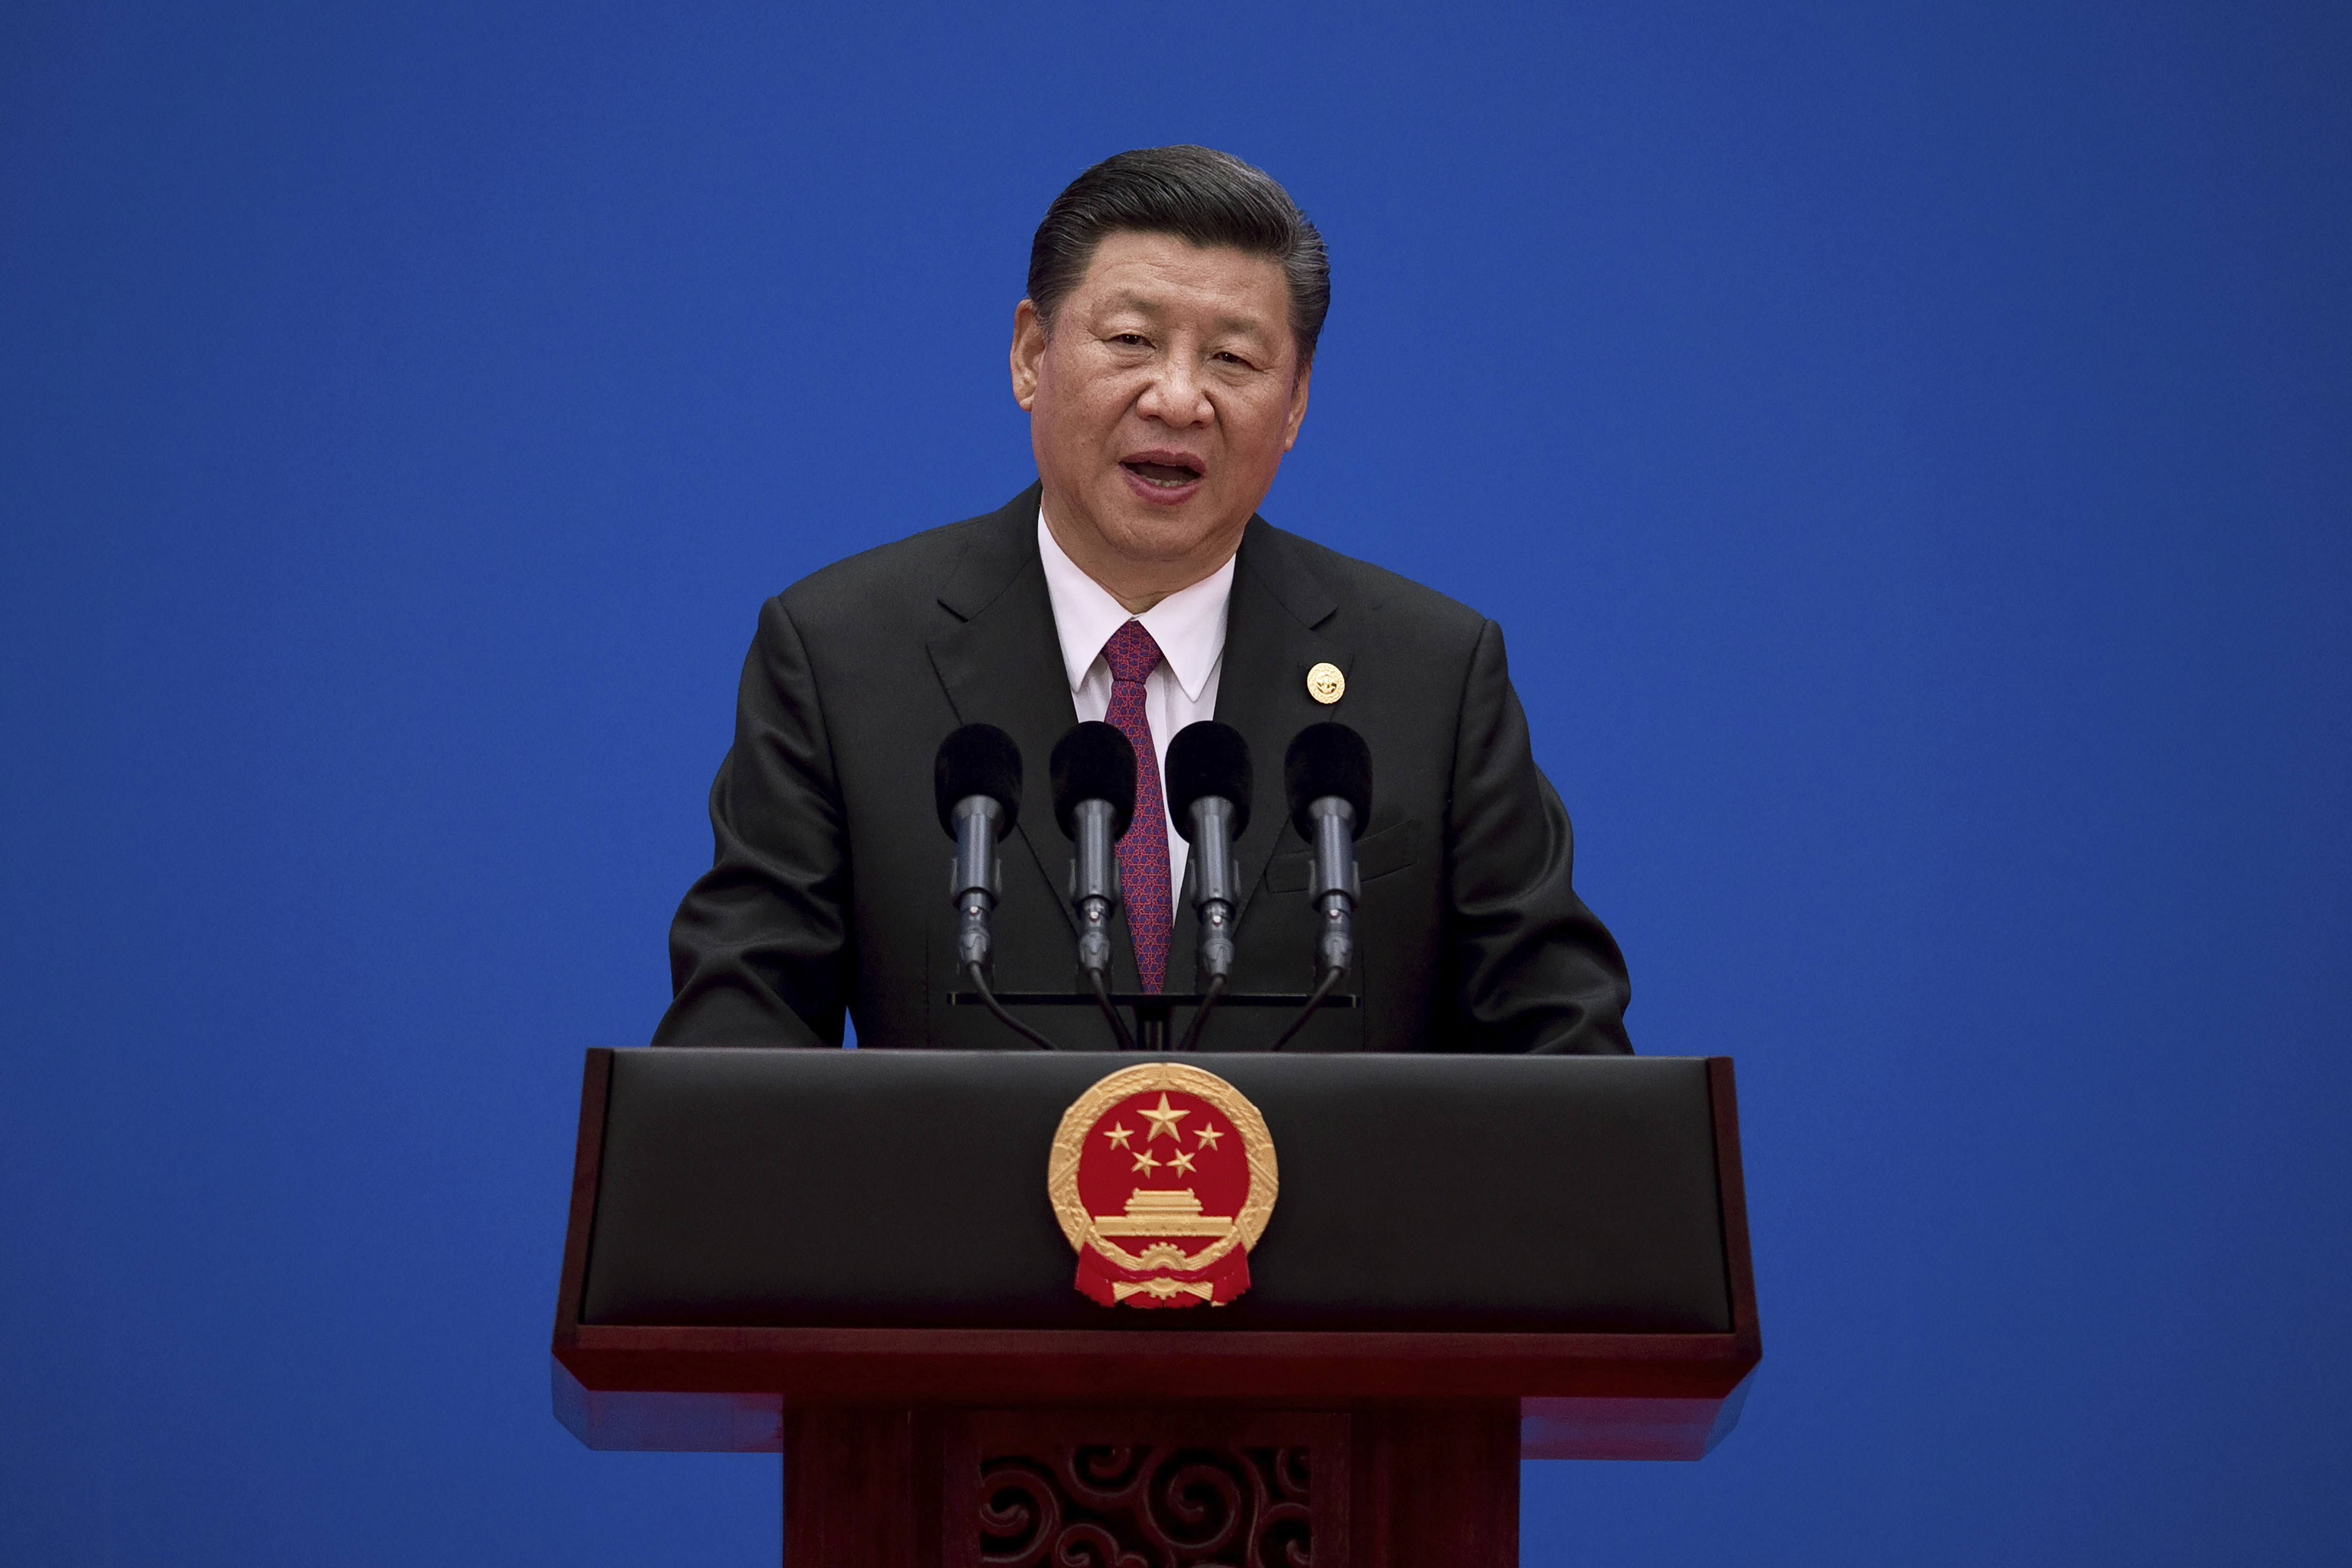 Chinese President Xi Jinping speaks during a news conference at the end of the Belt and Road Forum at the Yanqi Lake International Conference Center, north of Beijing, May 15, 2017.